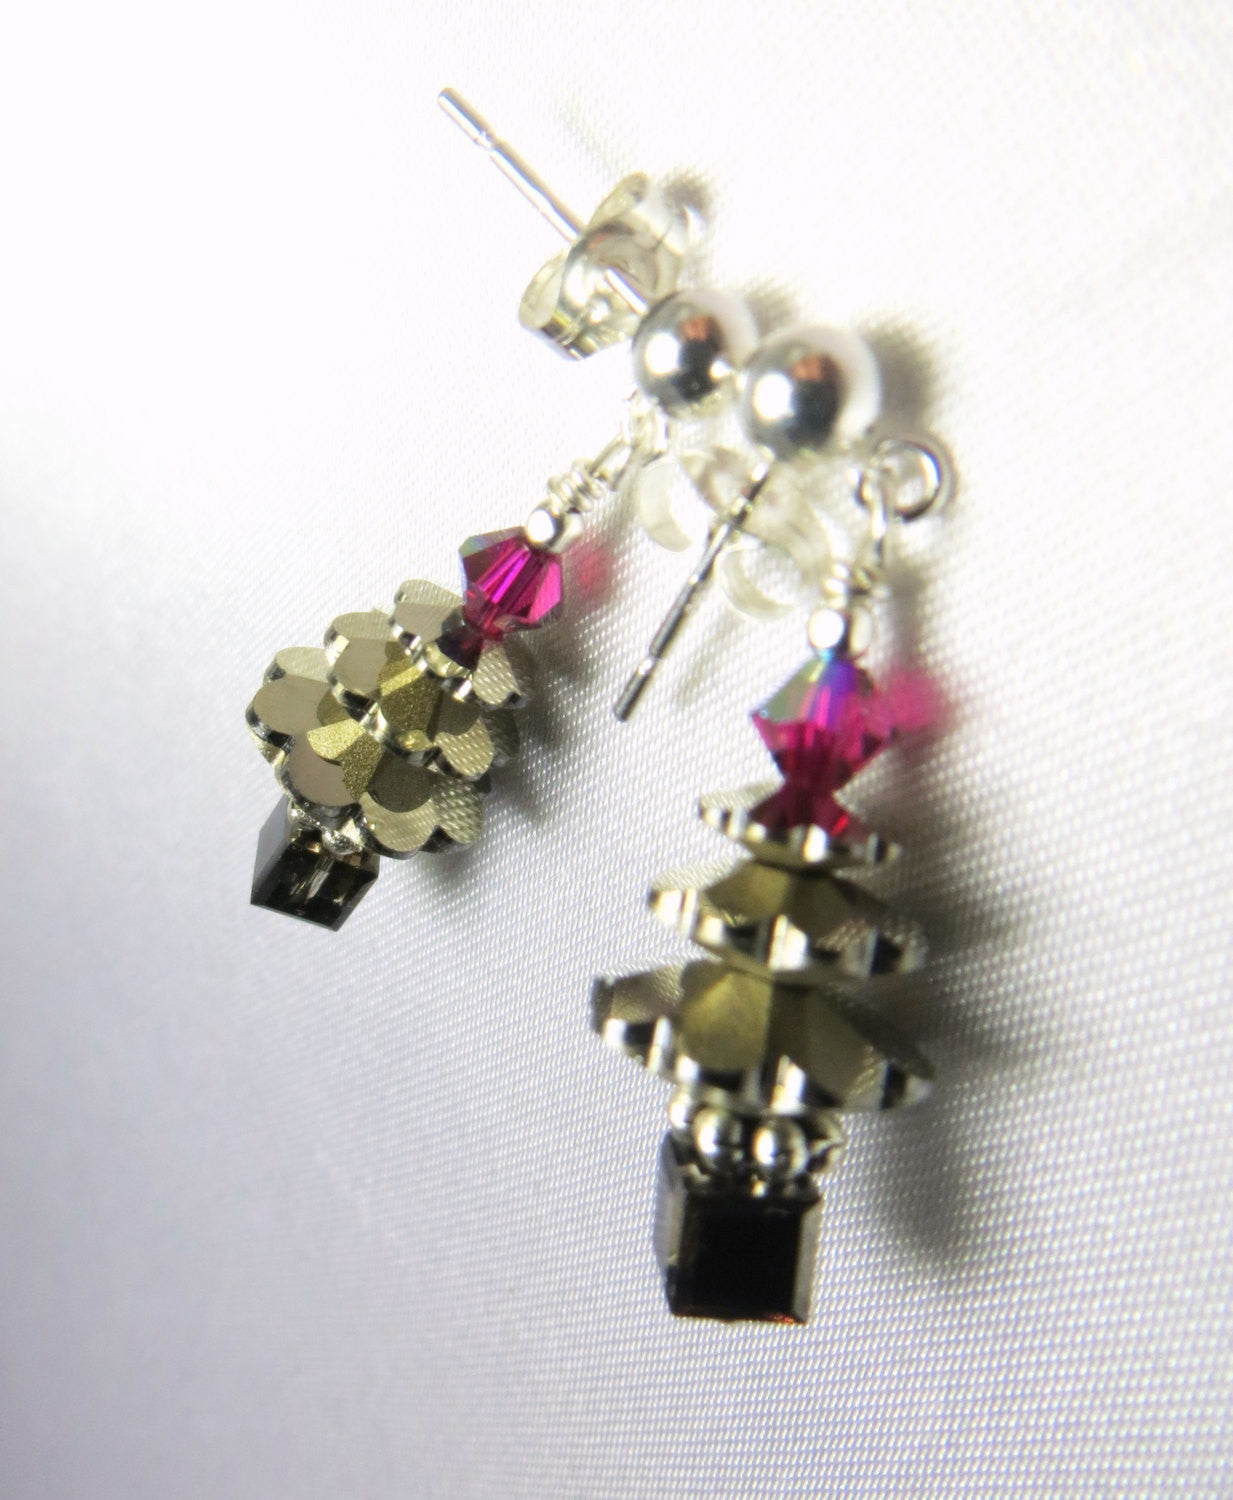 Christmas Tree Earrings in Swarovski Metallic Silver Night on Sterling Silver Posts - Odyssey Creations